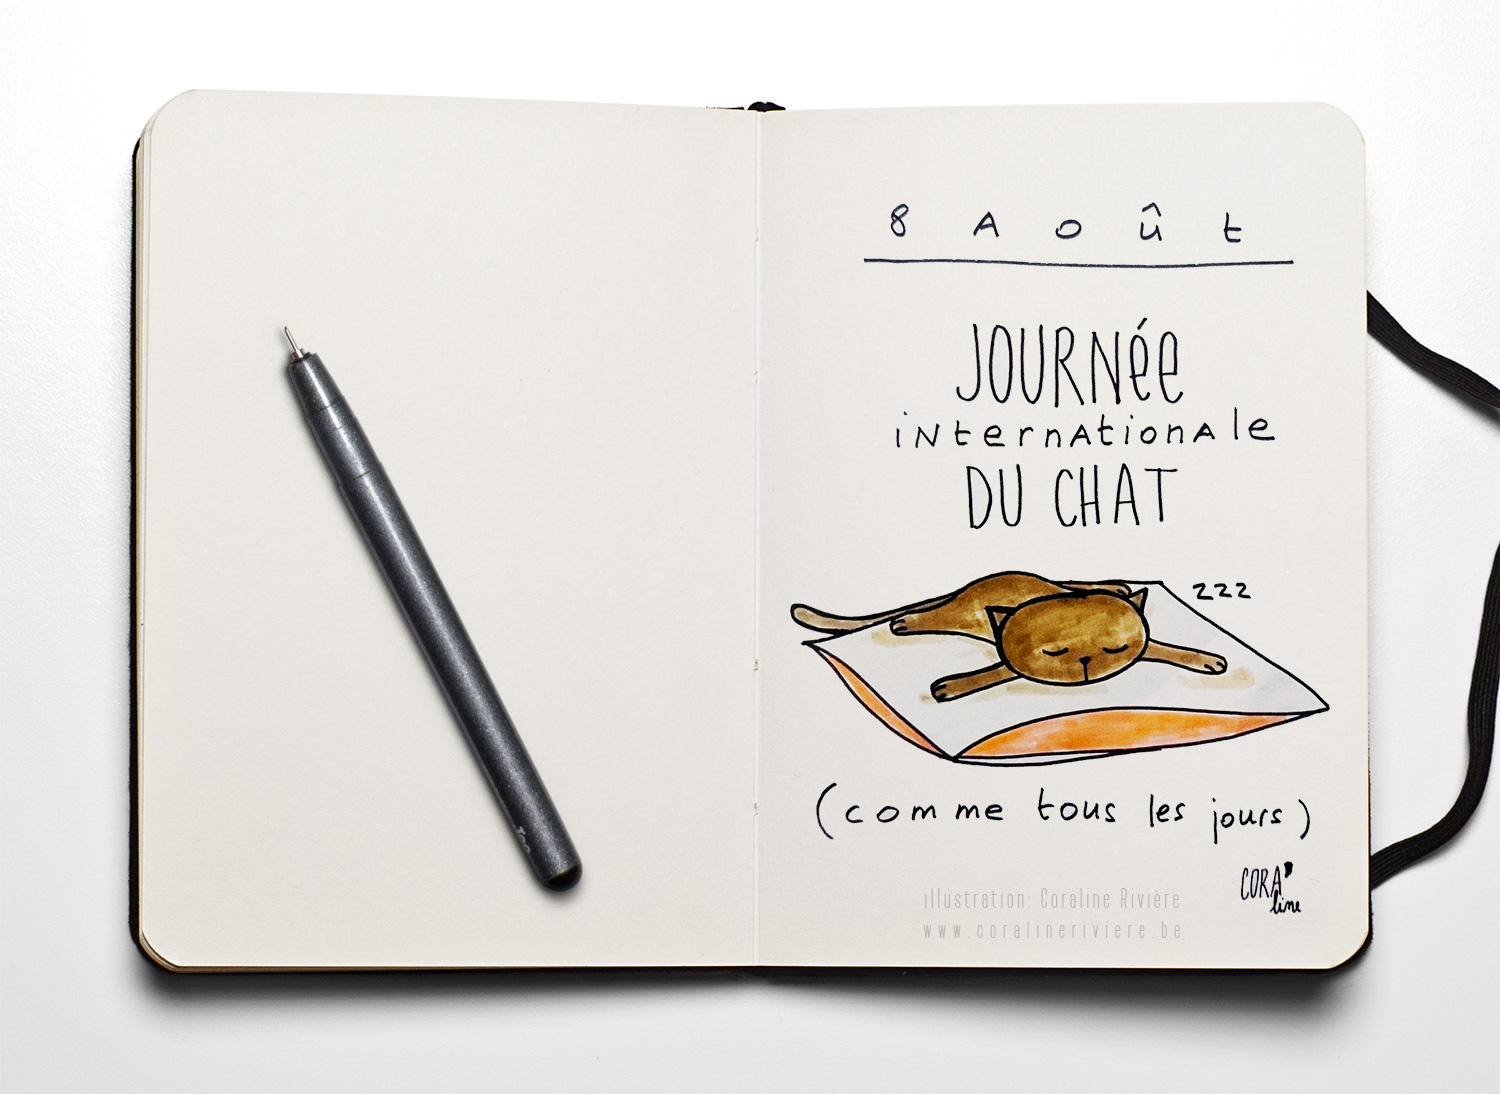 dessin journee internationale du chat 8aout